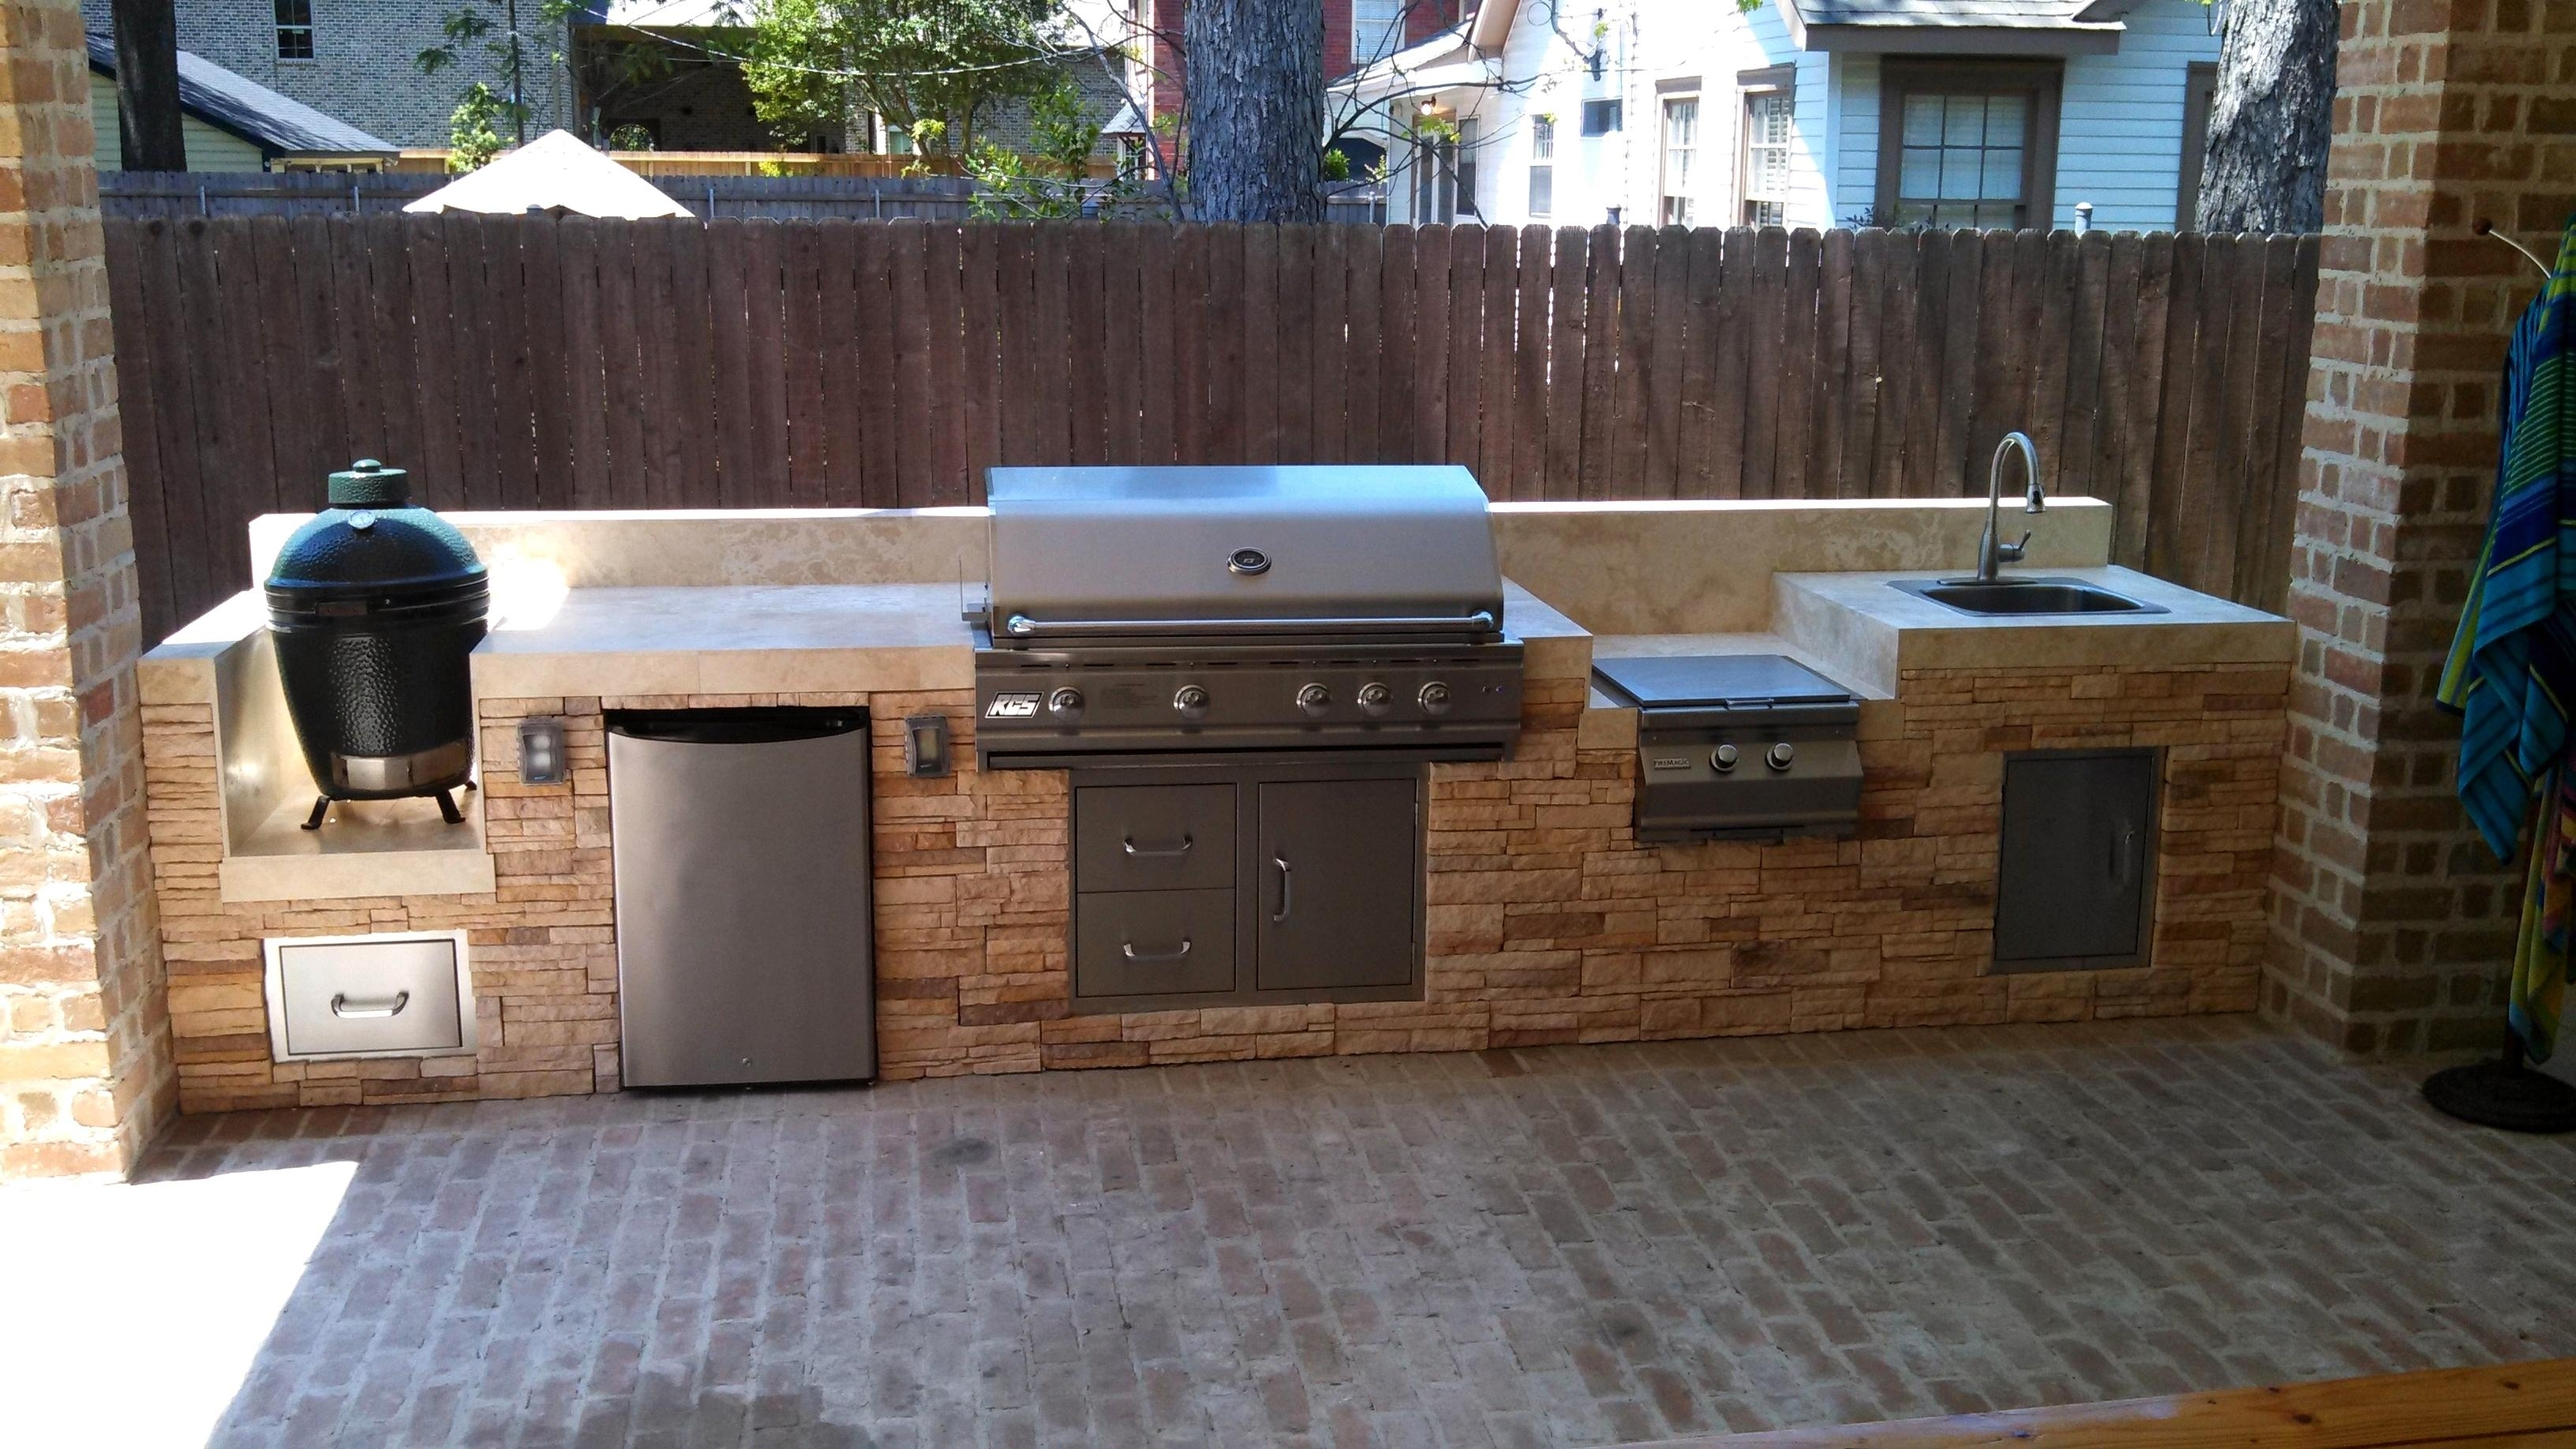 Extraordinary Green Egg Built In Outdoor Kitchen & Green Egg Built In Outdoor Kitchen Ideas u2014 Randolph Indoor and ...